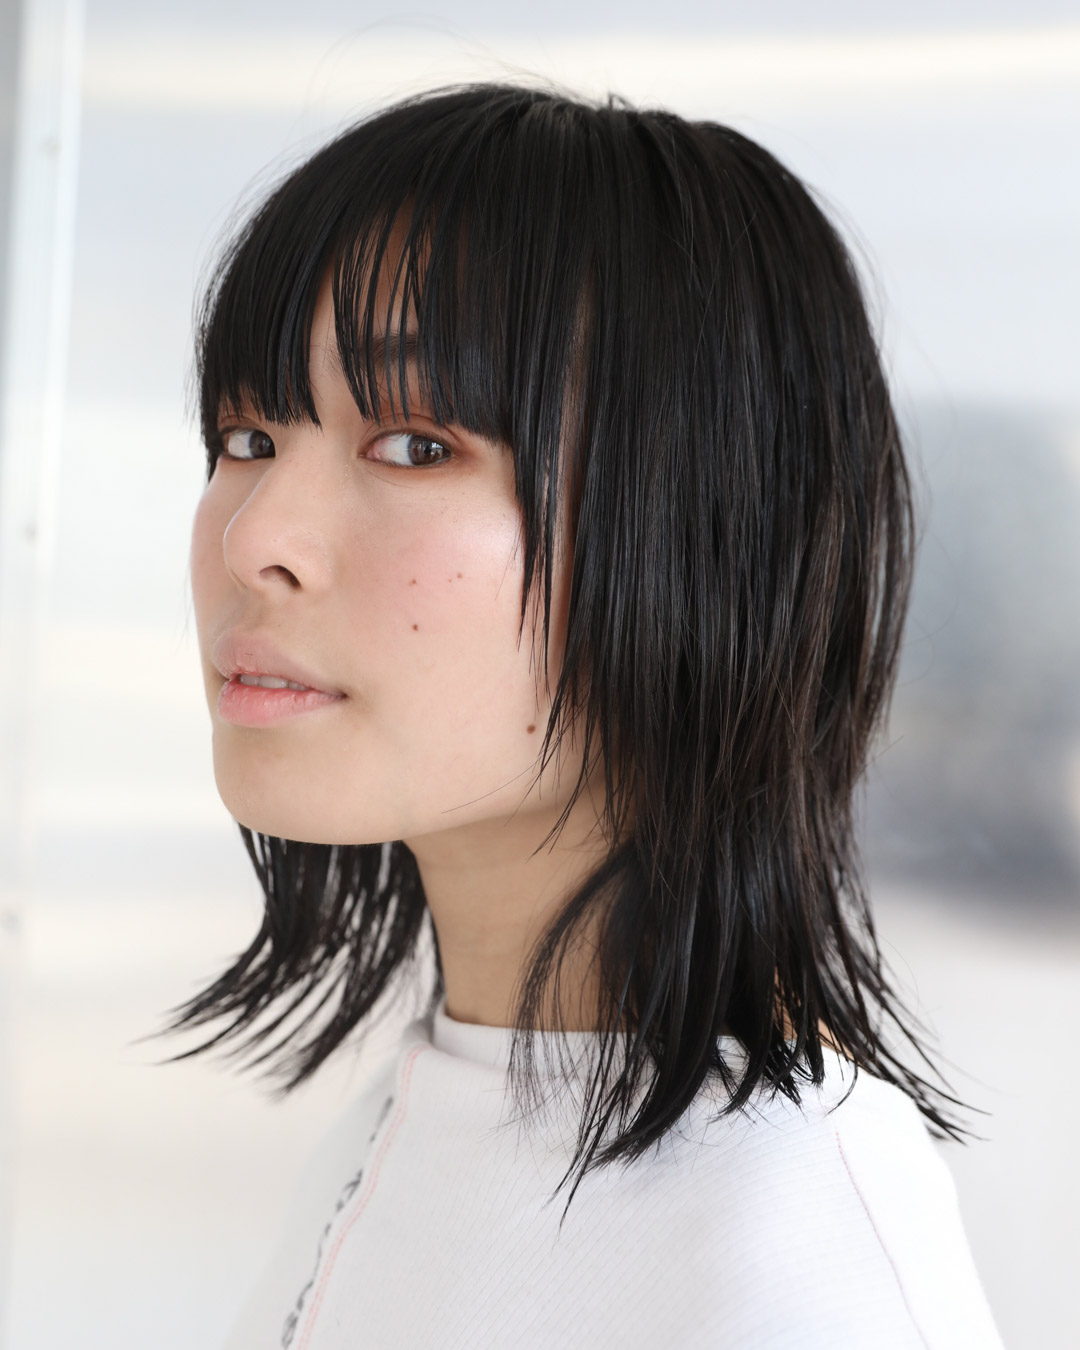 Layer Cut - MENUCut and stylePRICEapprox. $90 (Cut from $90)TIMEapprox. 1 hour